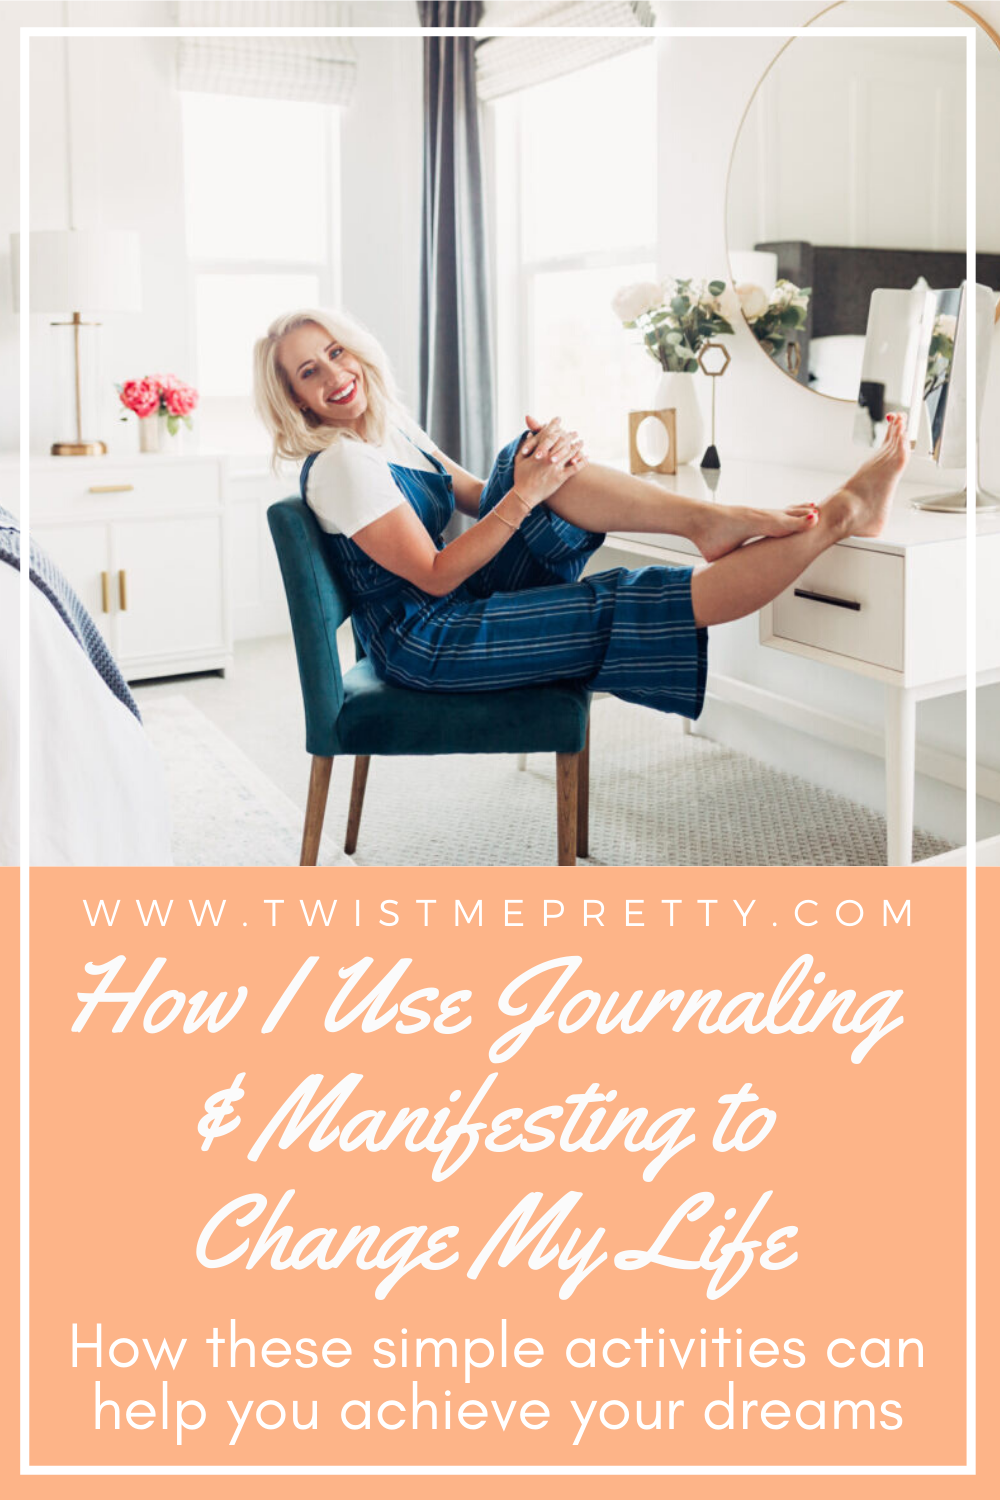 How I use journaling and manifesting to change my life. How these simple activities can help you achieve your dreams. www.twistmepretty.com